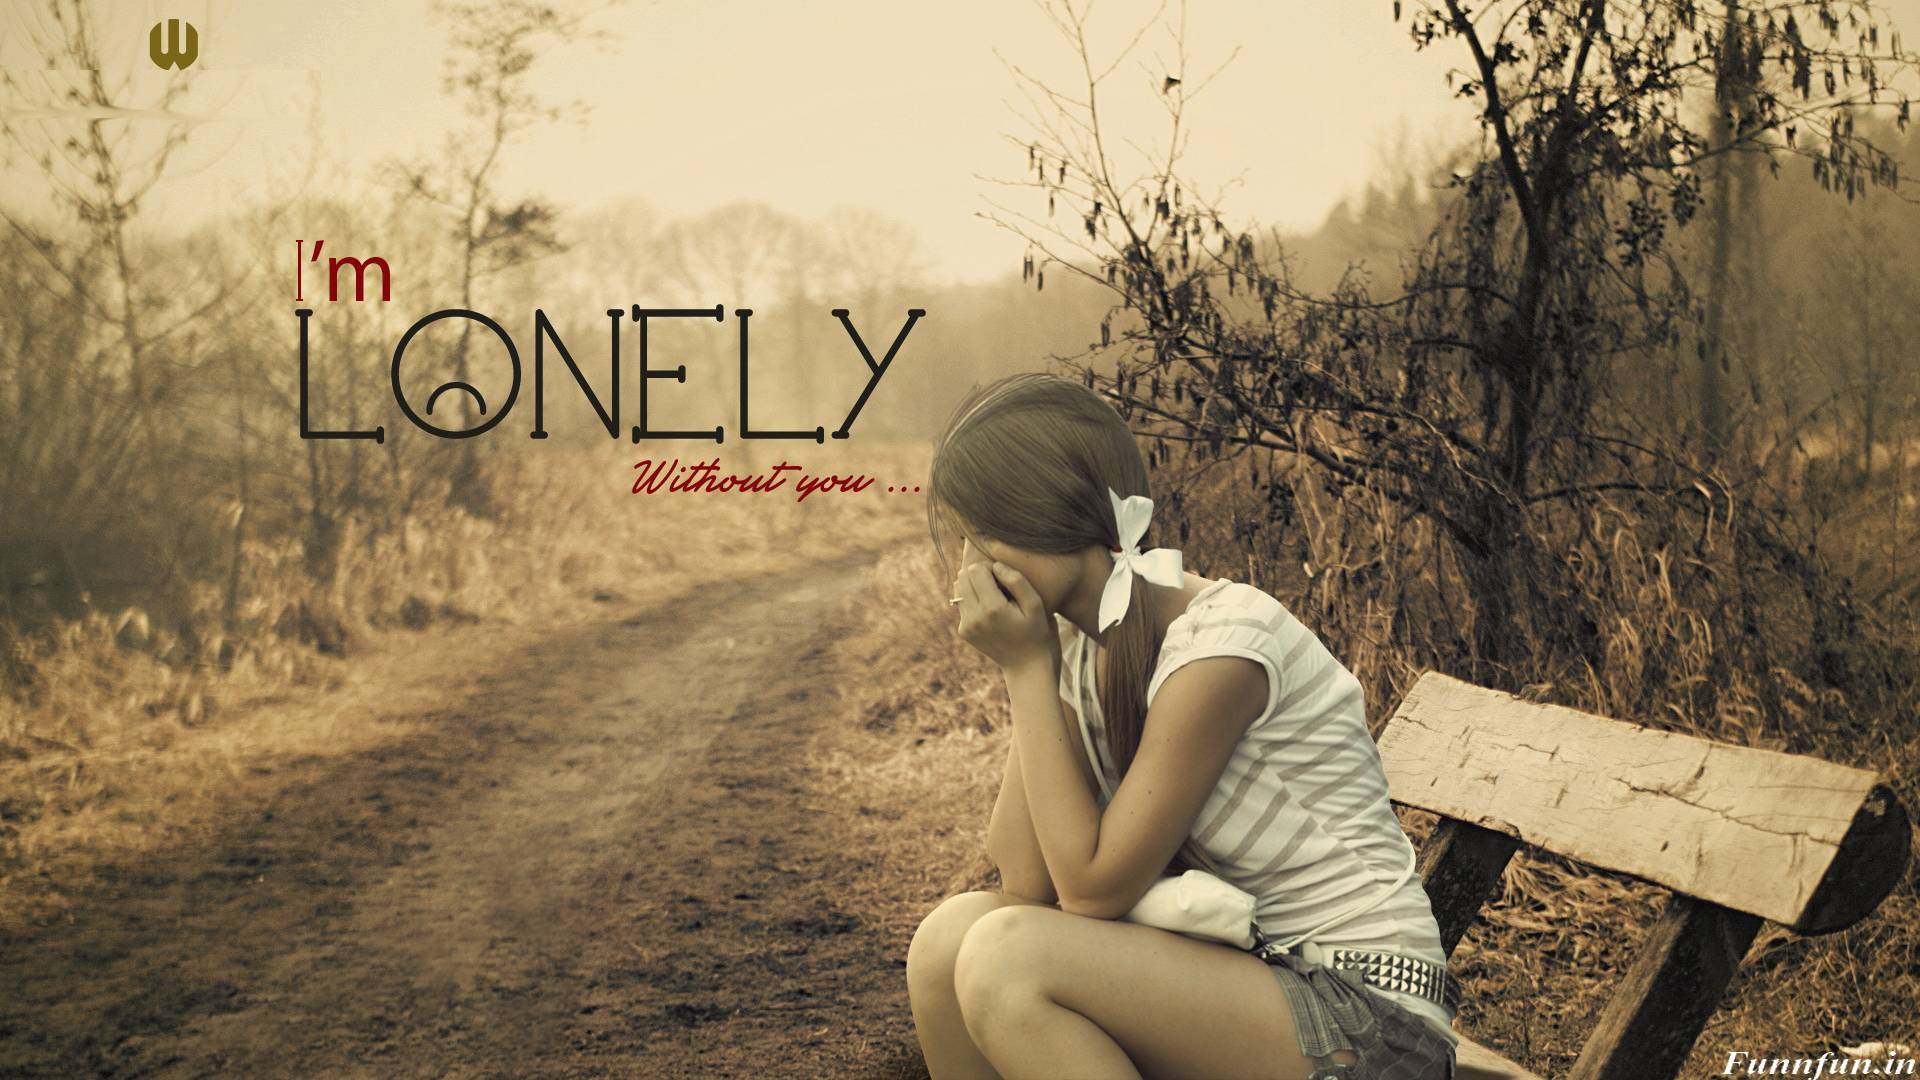 group of sad love hd wallpapers